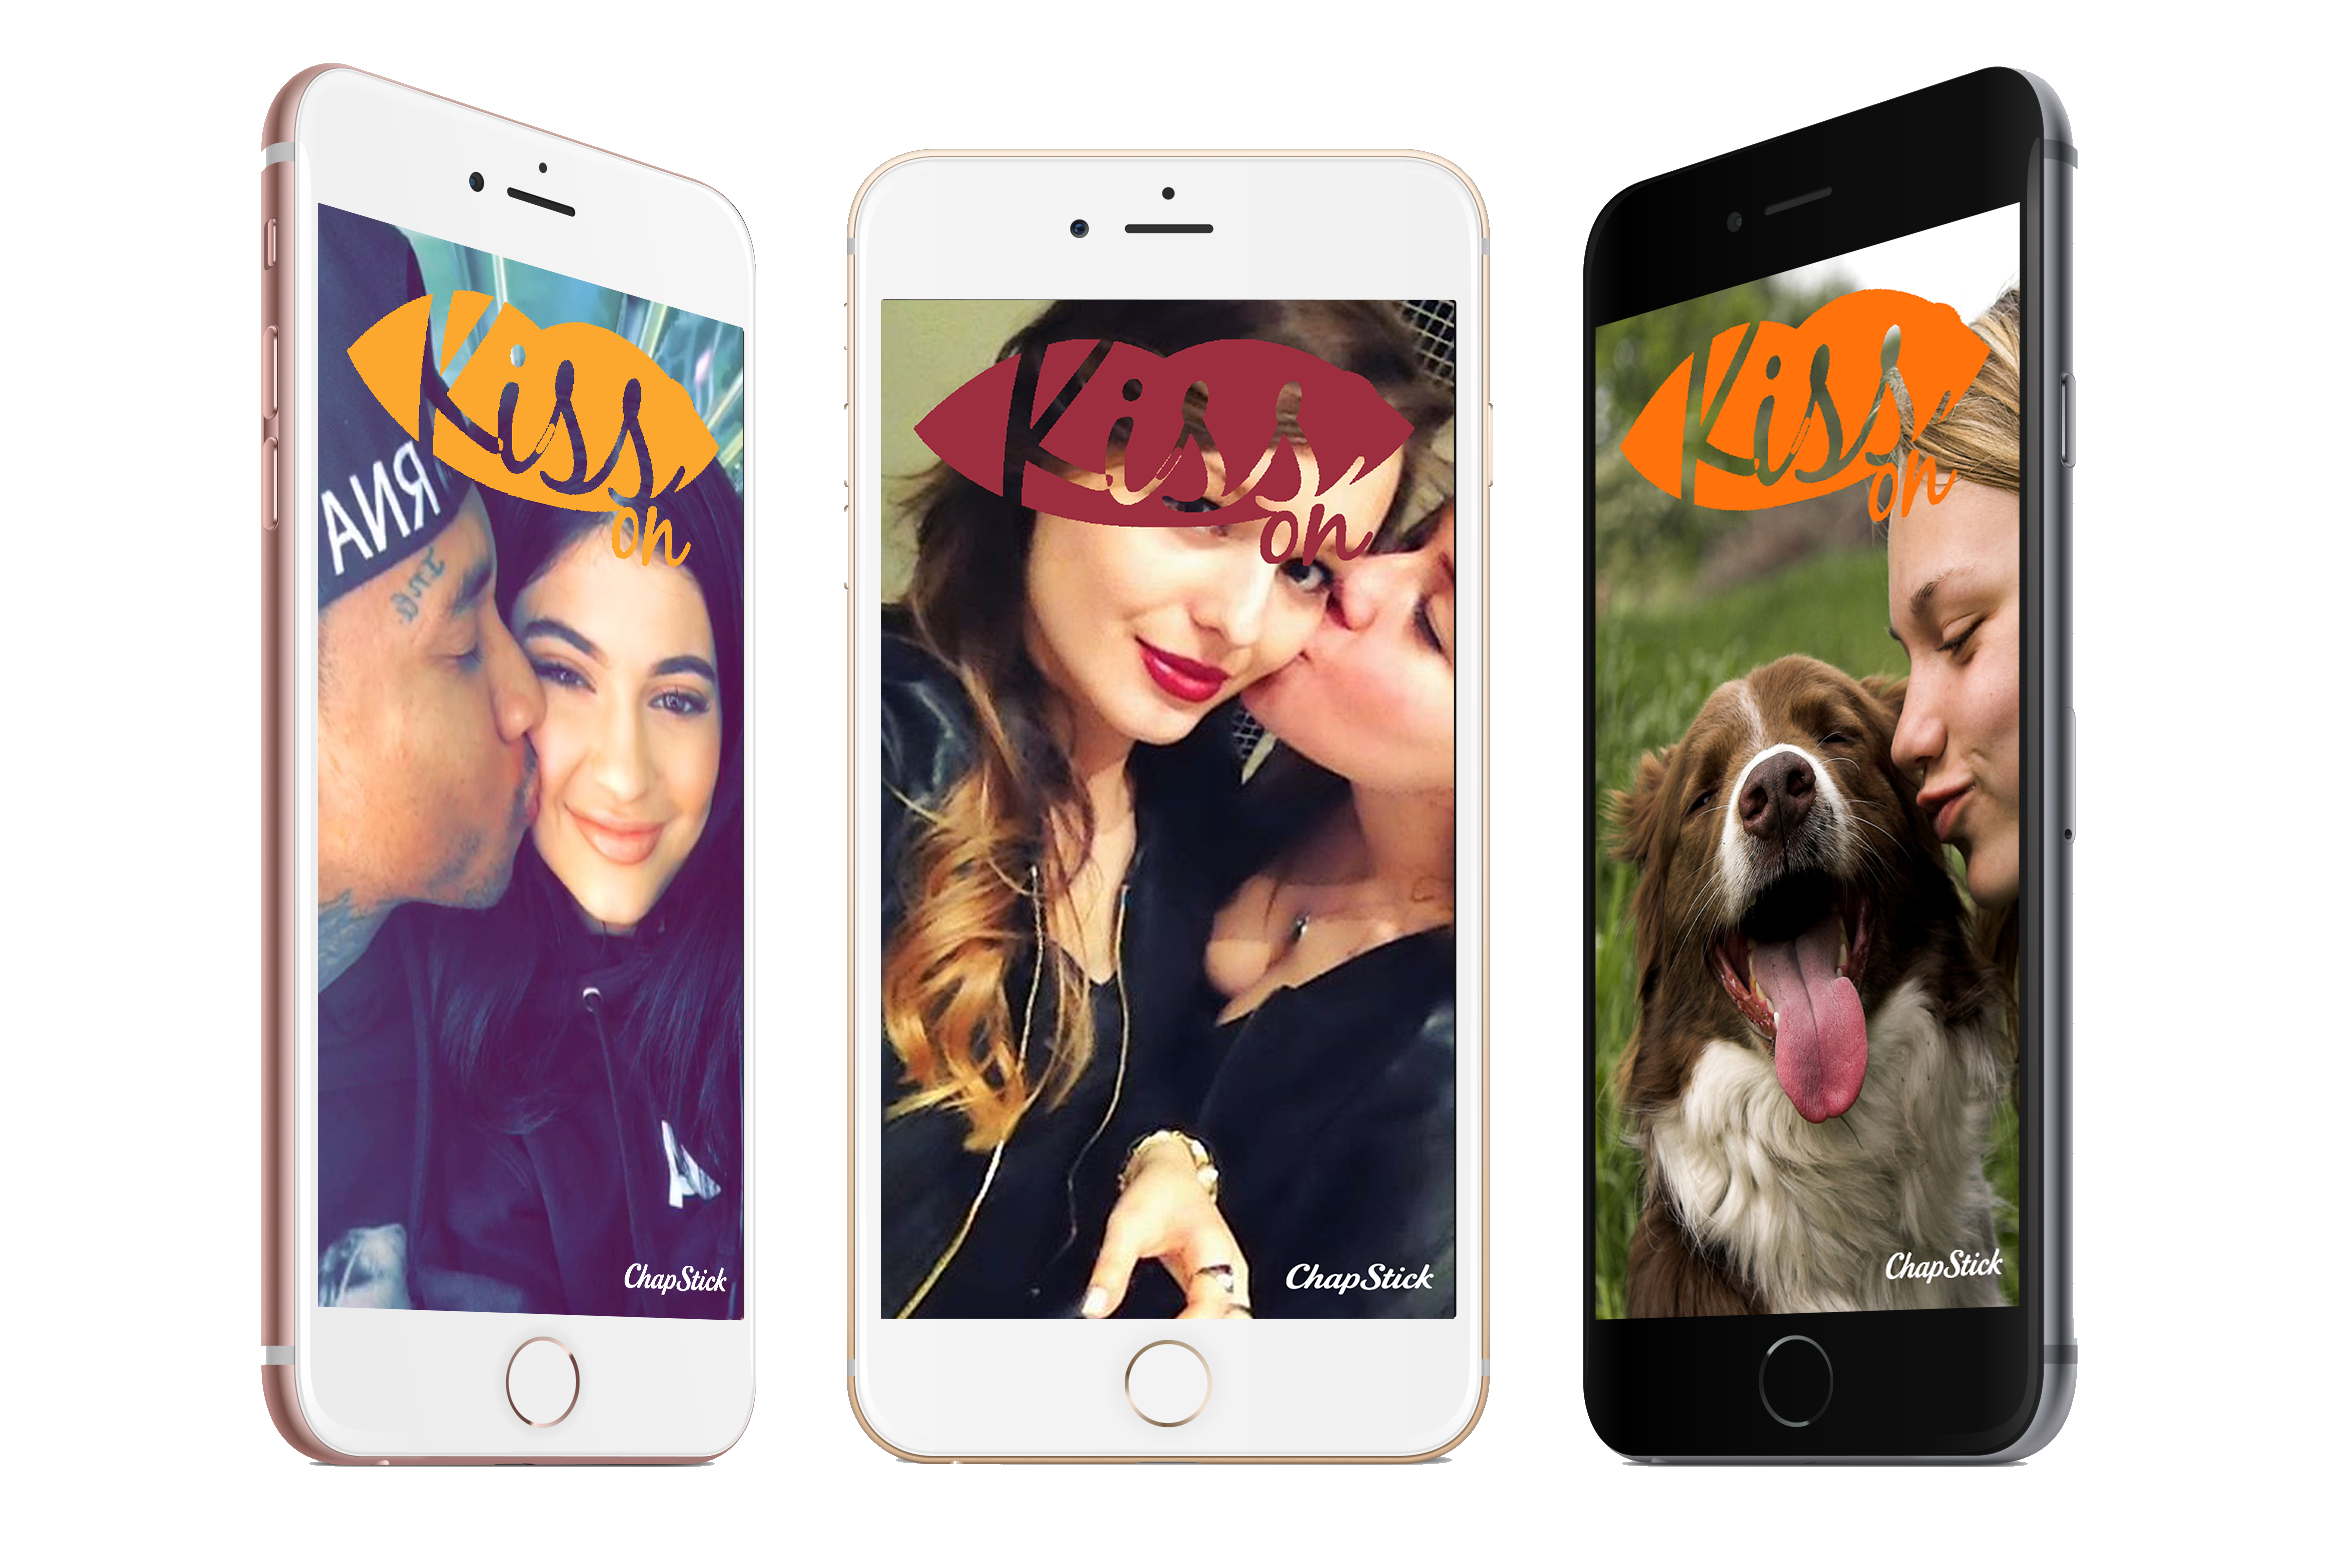 Filters will be available for users on New Year's Eve, Valentine's Day, Mother's Day, Father's Day, International Kissing Day, VE Day, Memorial Day, July 4th, VJ Day, Veteran's Day, Thanksgiving, and the Holiday Season.